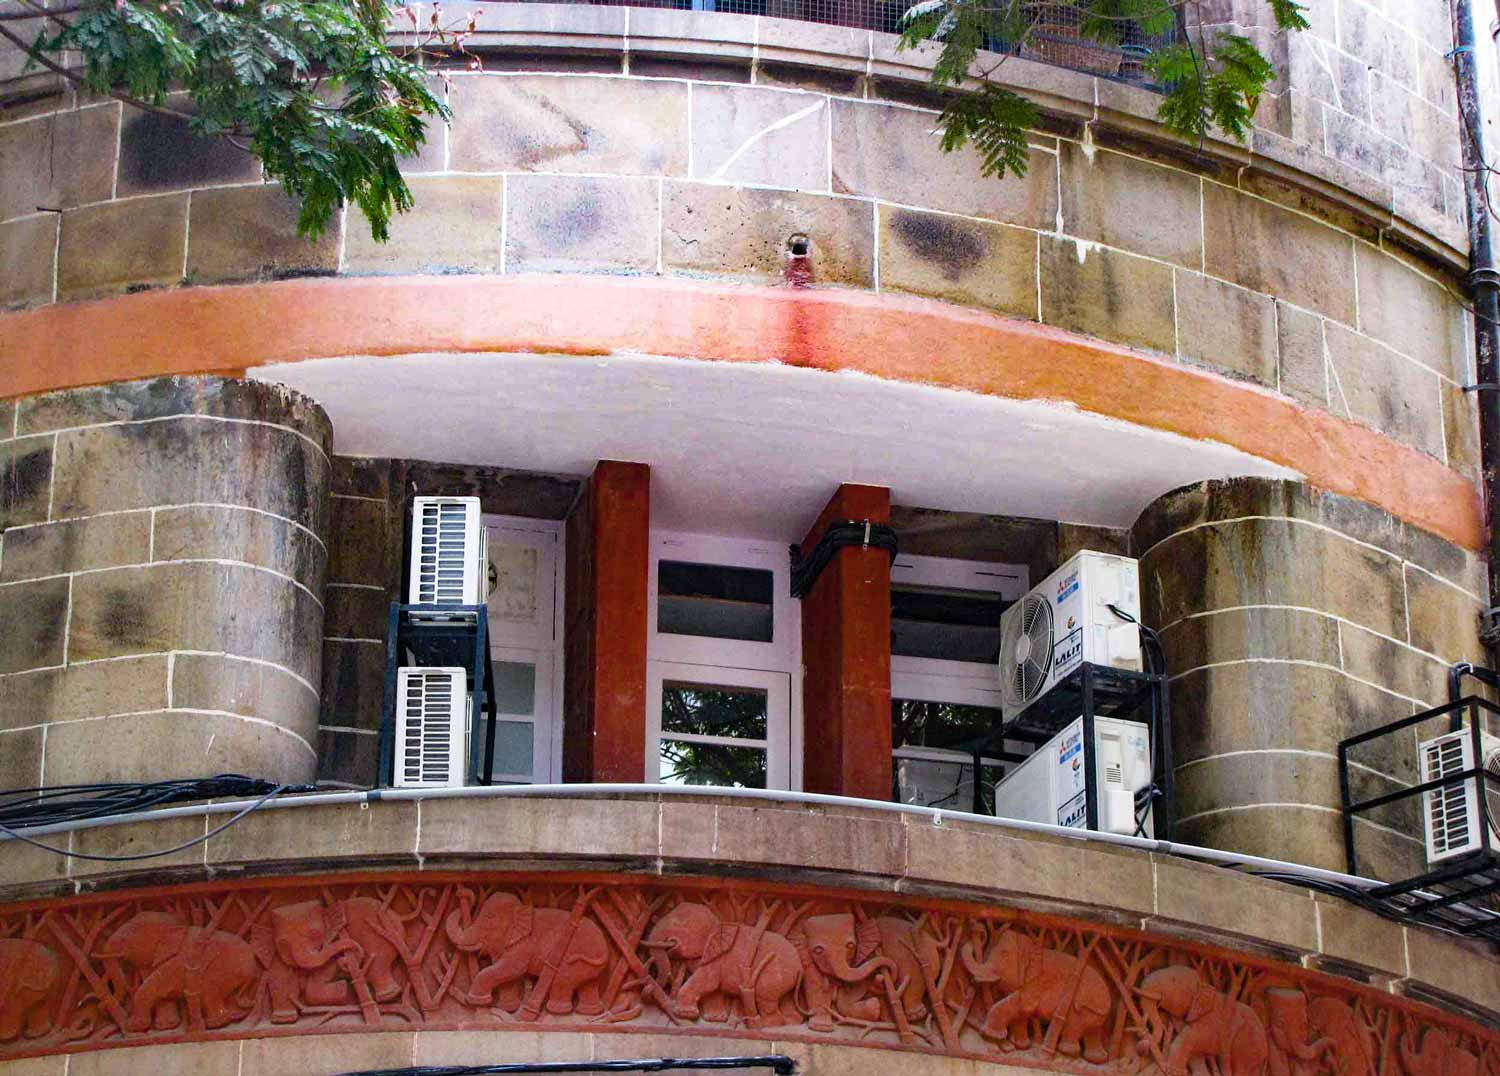 Façade of Lakshmi Building with chhajas and carved elephants on red sandstone panels. Master, Sathe & Bhuta. 1936–1938. Bombay, India. Source: Art Deco Mumbai